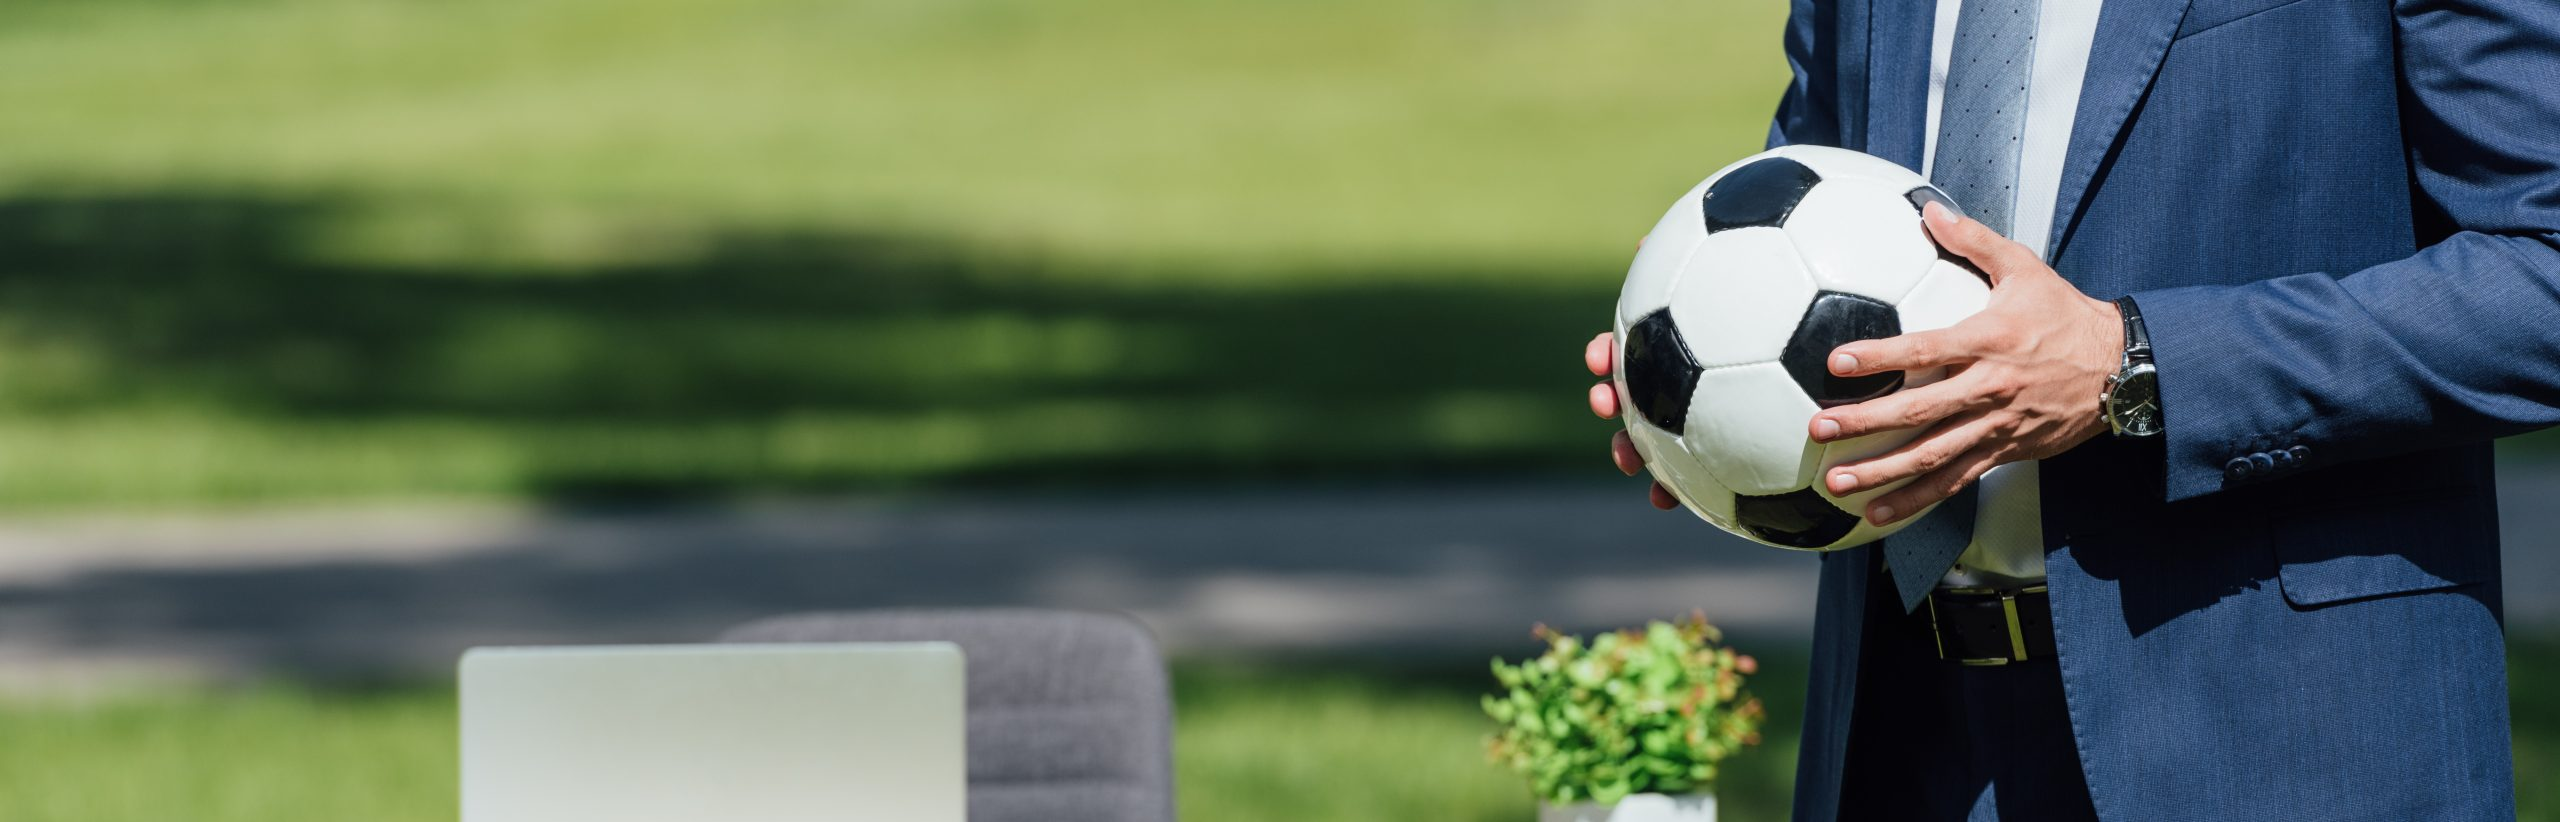 panoramic shot of businessman holding soccer ball in park near table with laptop